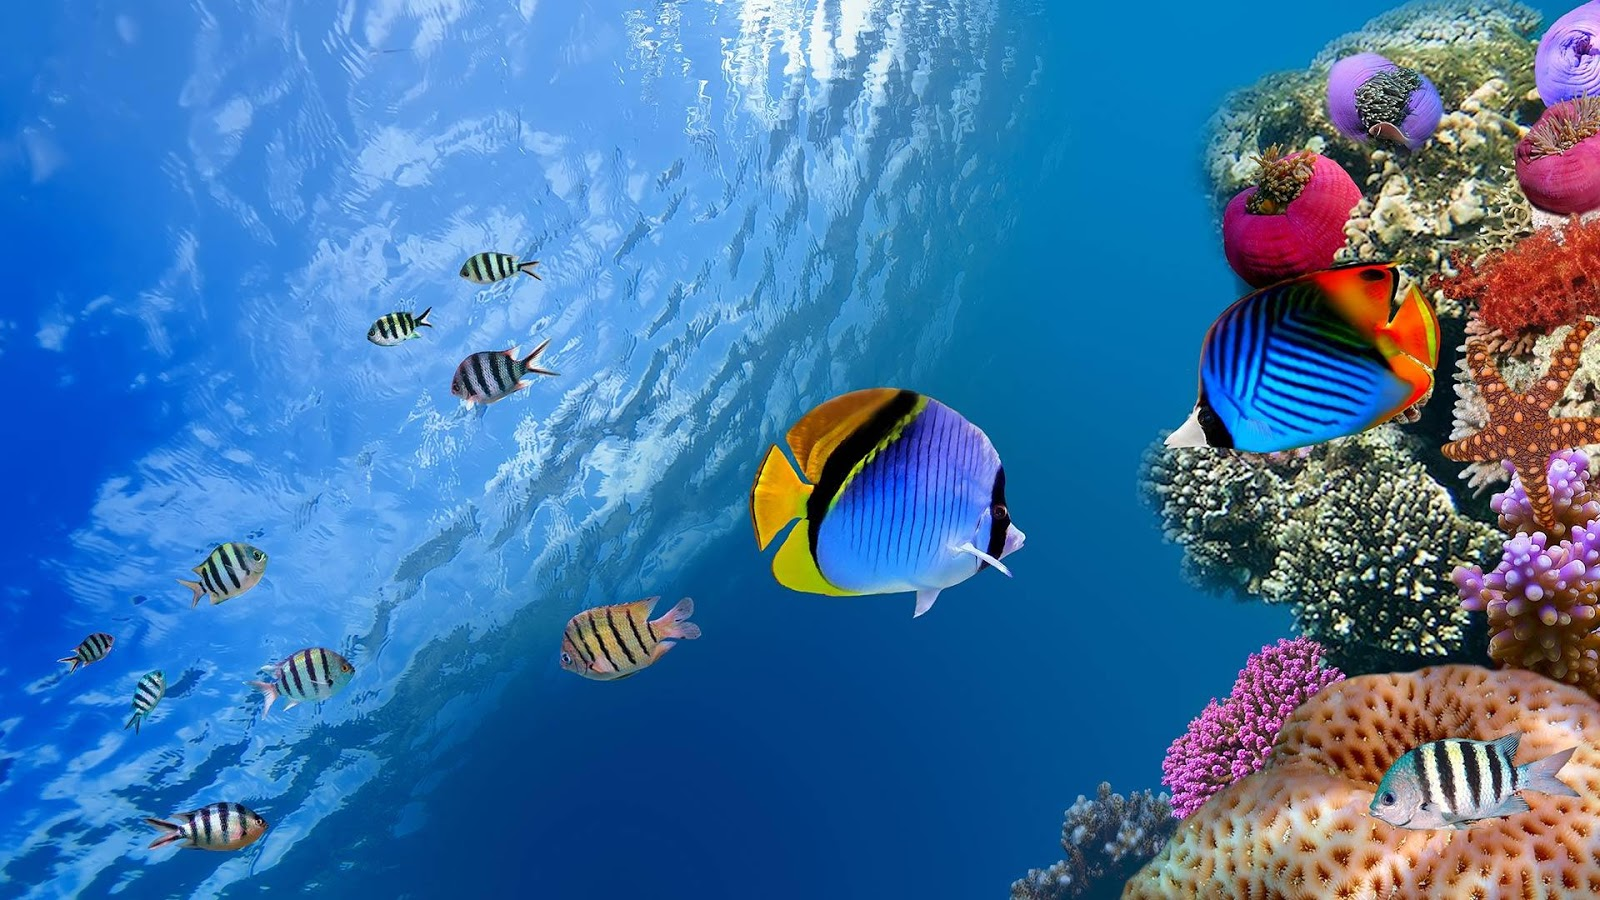 Ocean Fish Live Wallpaper   Android Apps on Google Play 1600x900